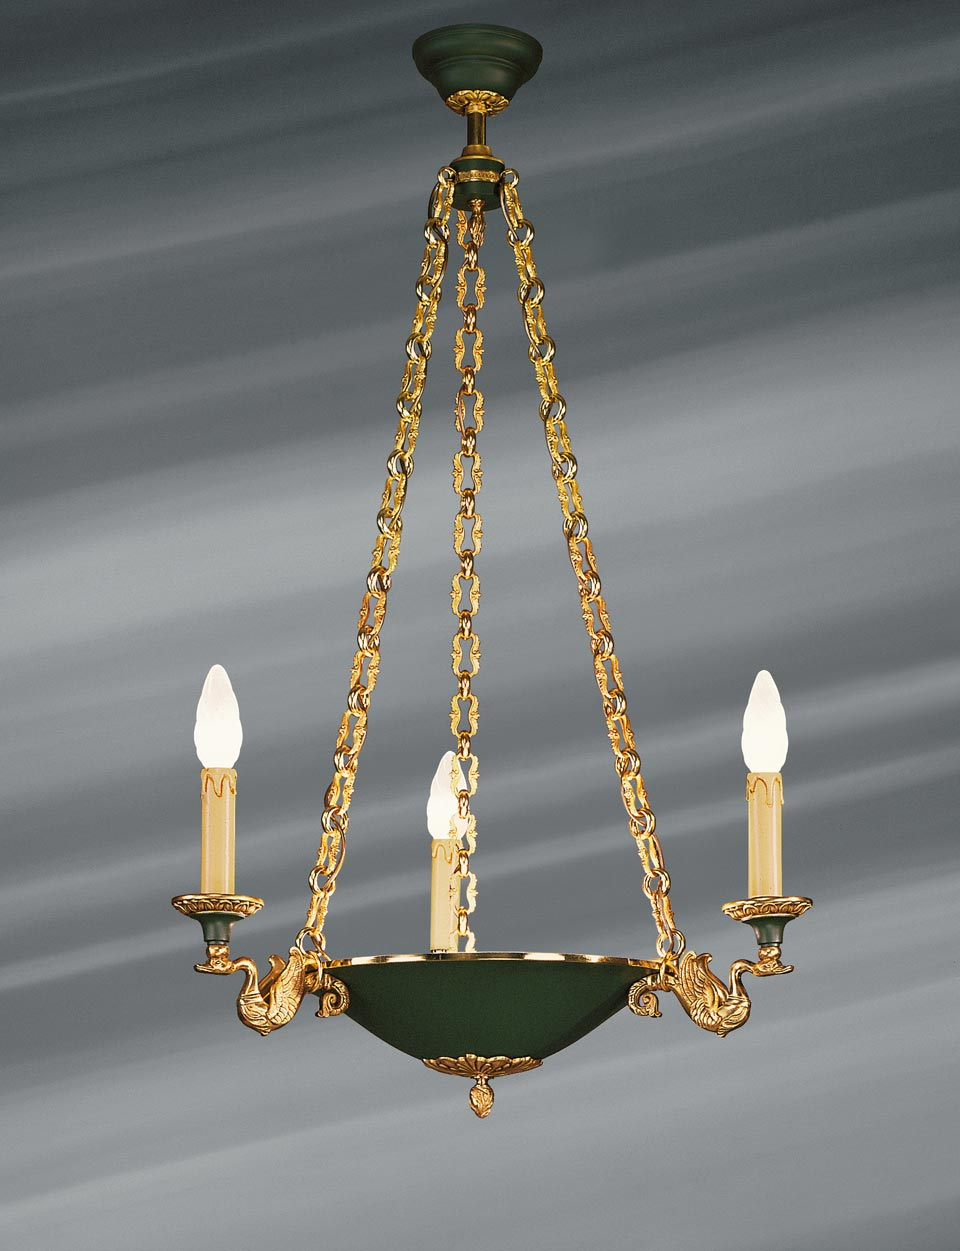 Empire Style Chandelier In The Shape Of A Flared And Lacquered Basin Three Lights Lucien Gau Massive Bronze Lightings Made In France Lustre En Bronze Massif Cygnes Triomphants Portant